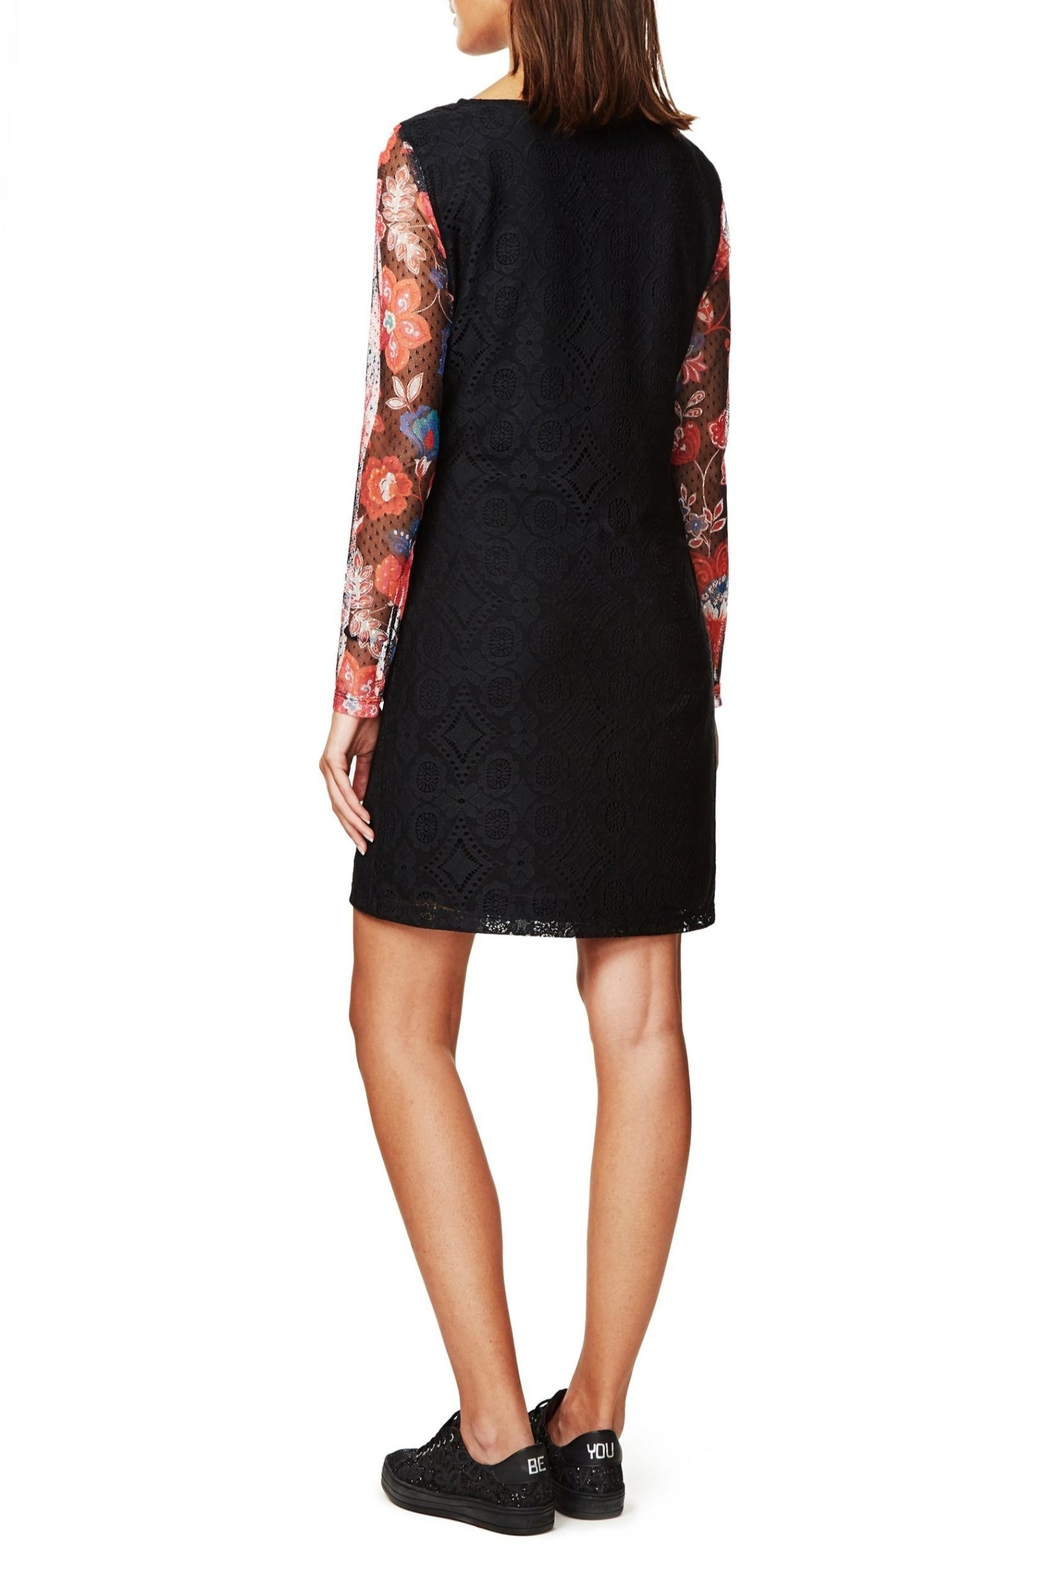 DESIGUAL Black Lace Dress - Front Full Image